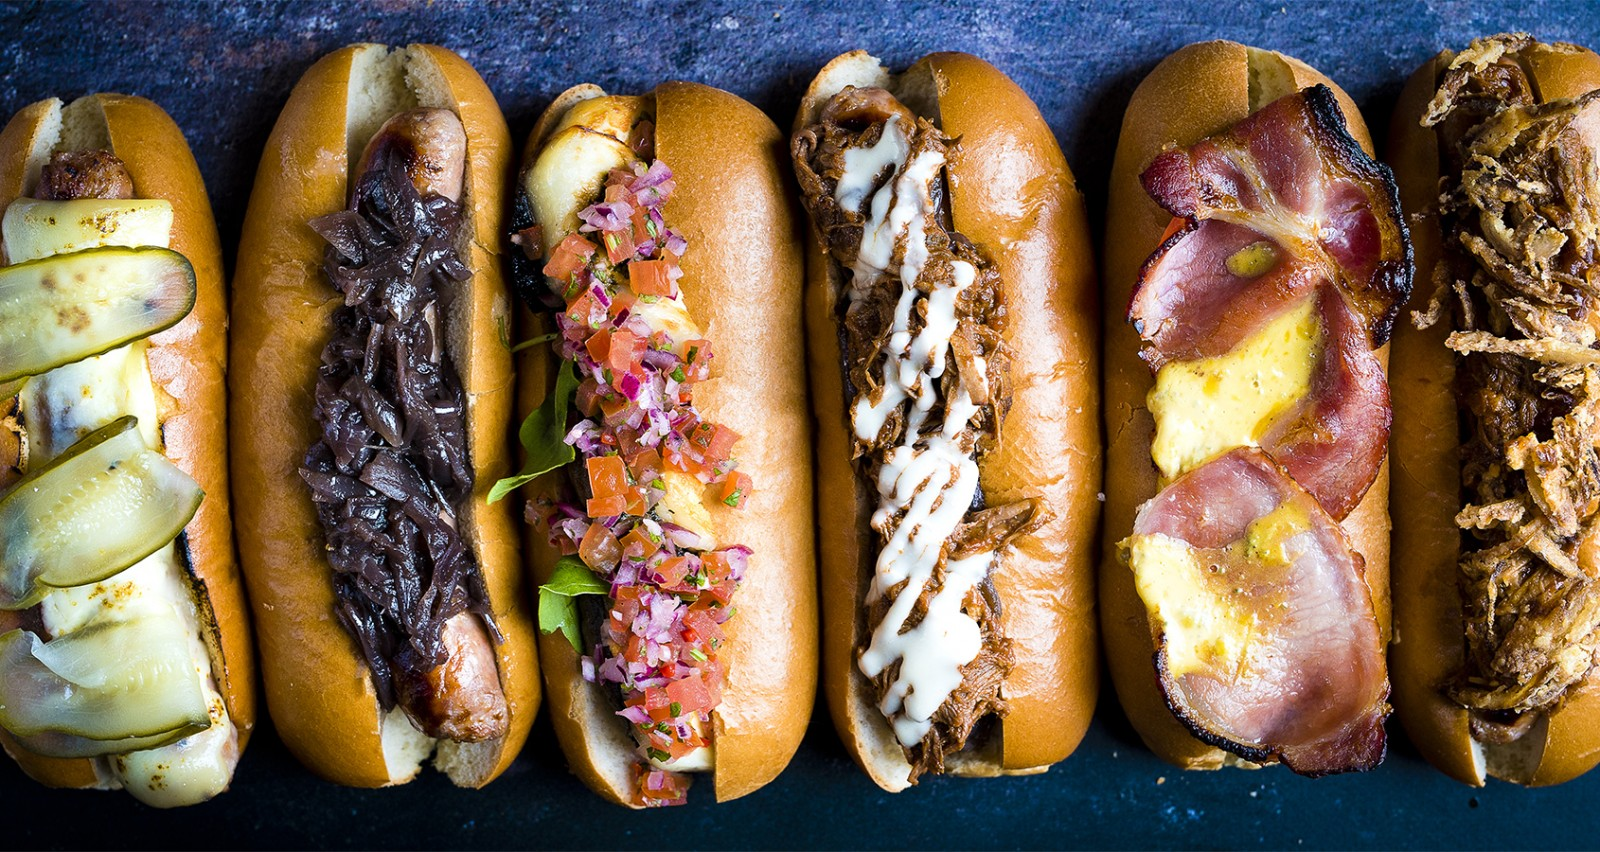 Hot dogs at The Refectory Kitchen & Terrace